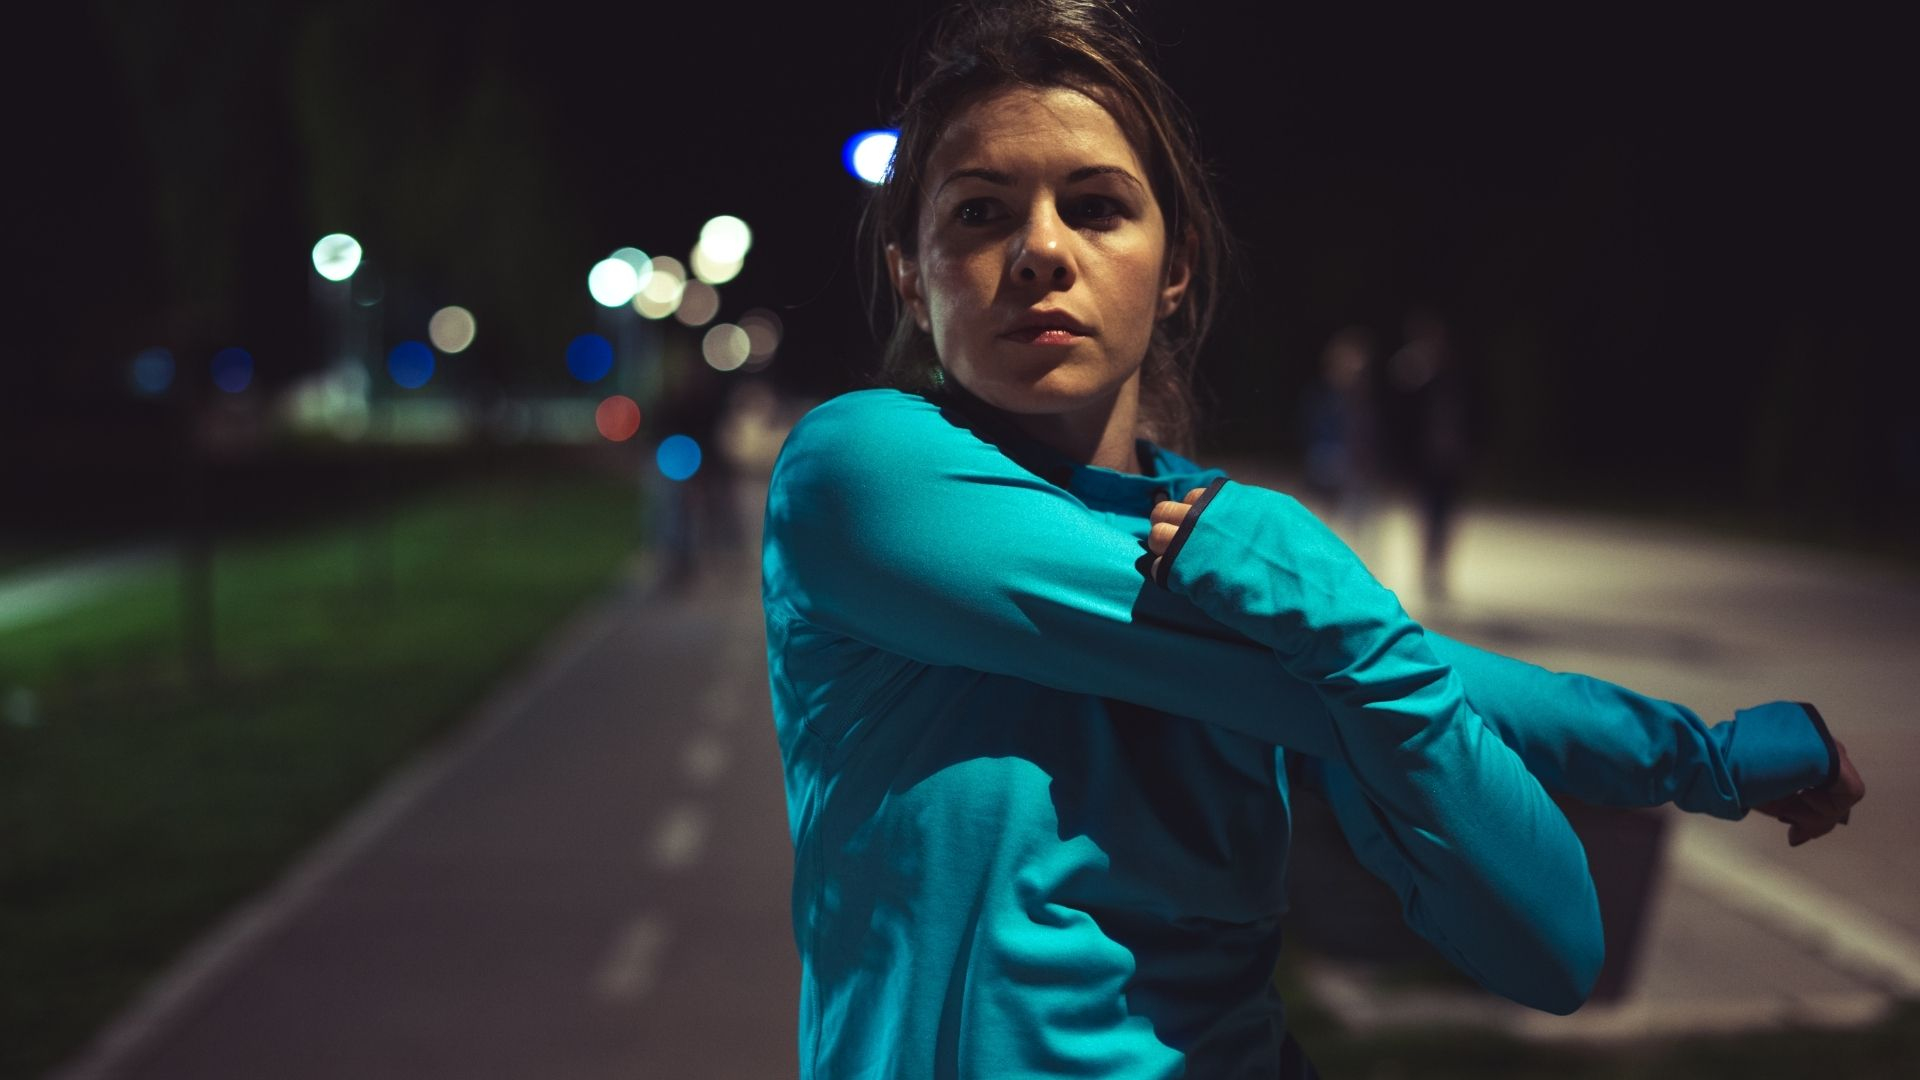 Runner stretching preparing to run in the dark outdoors